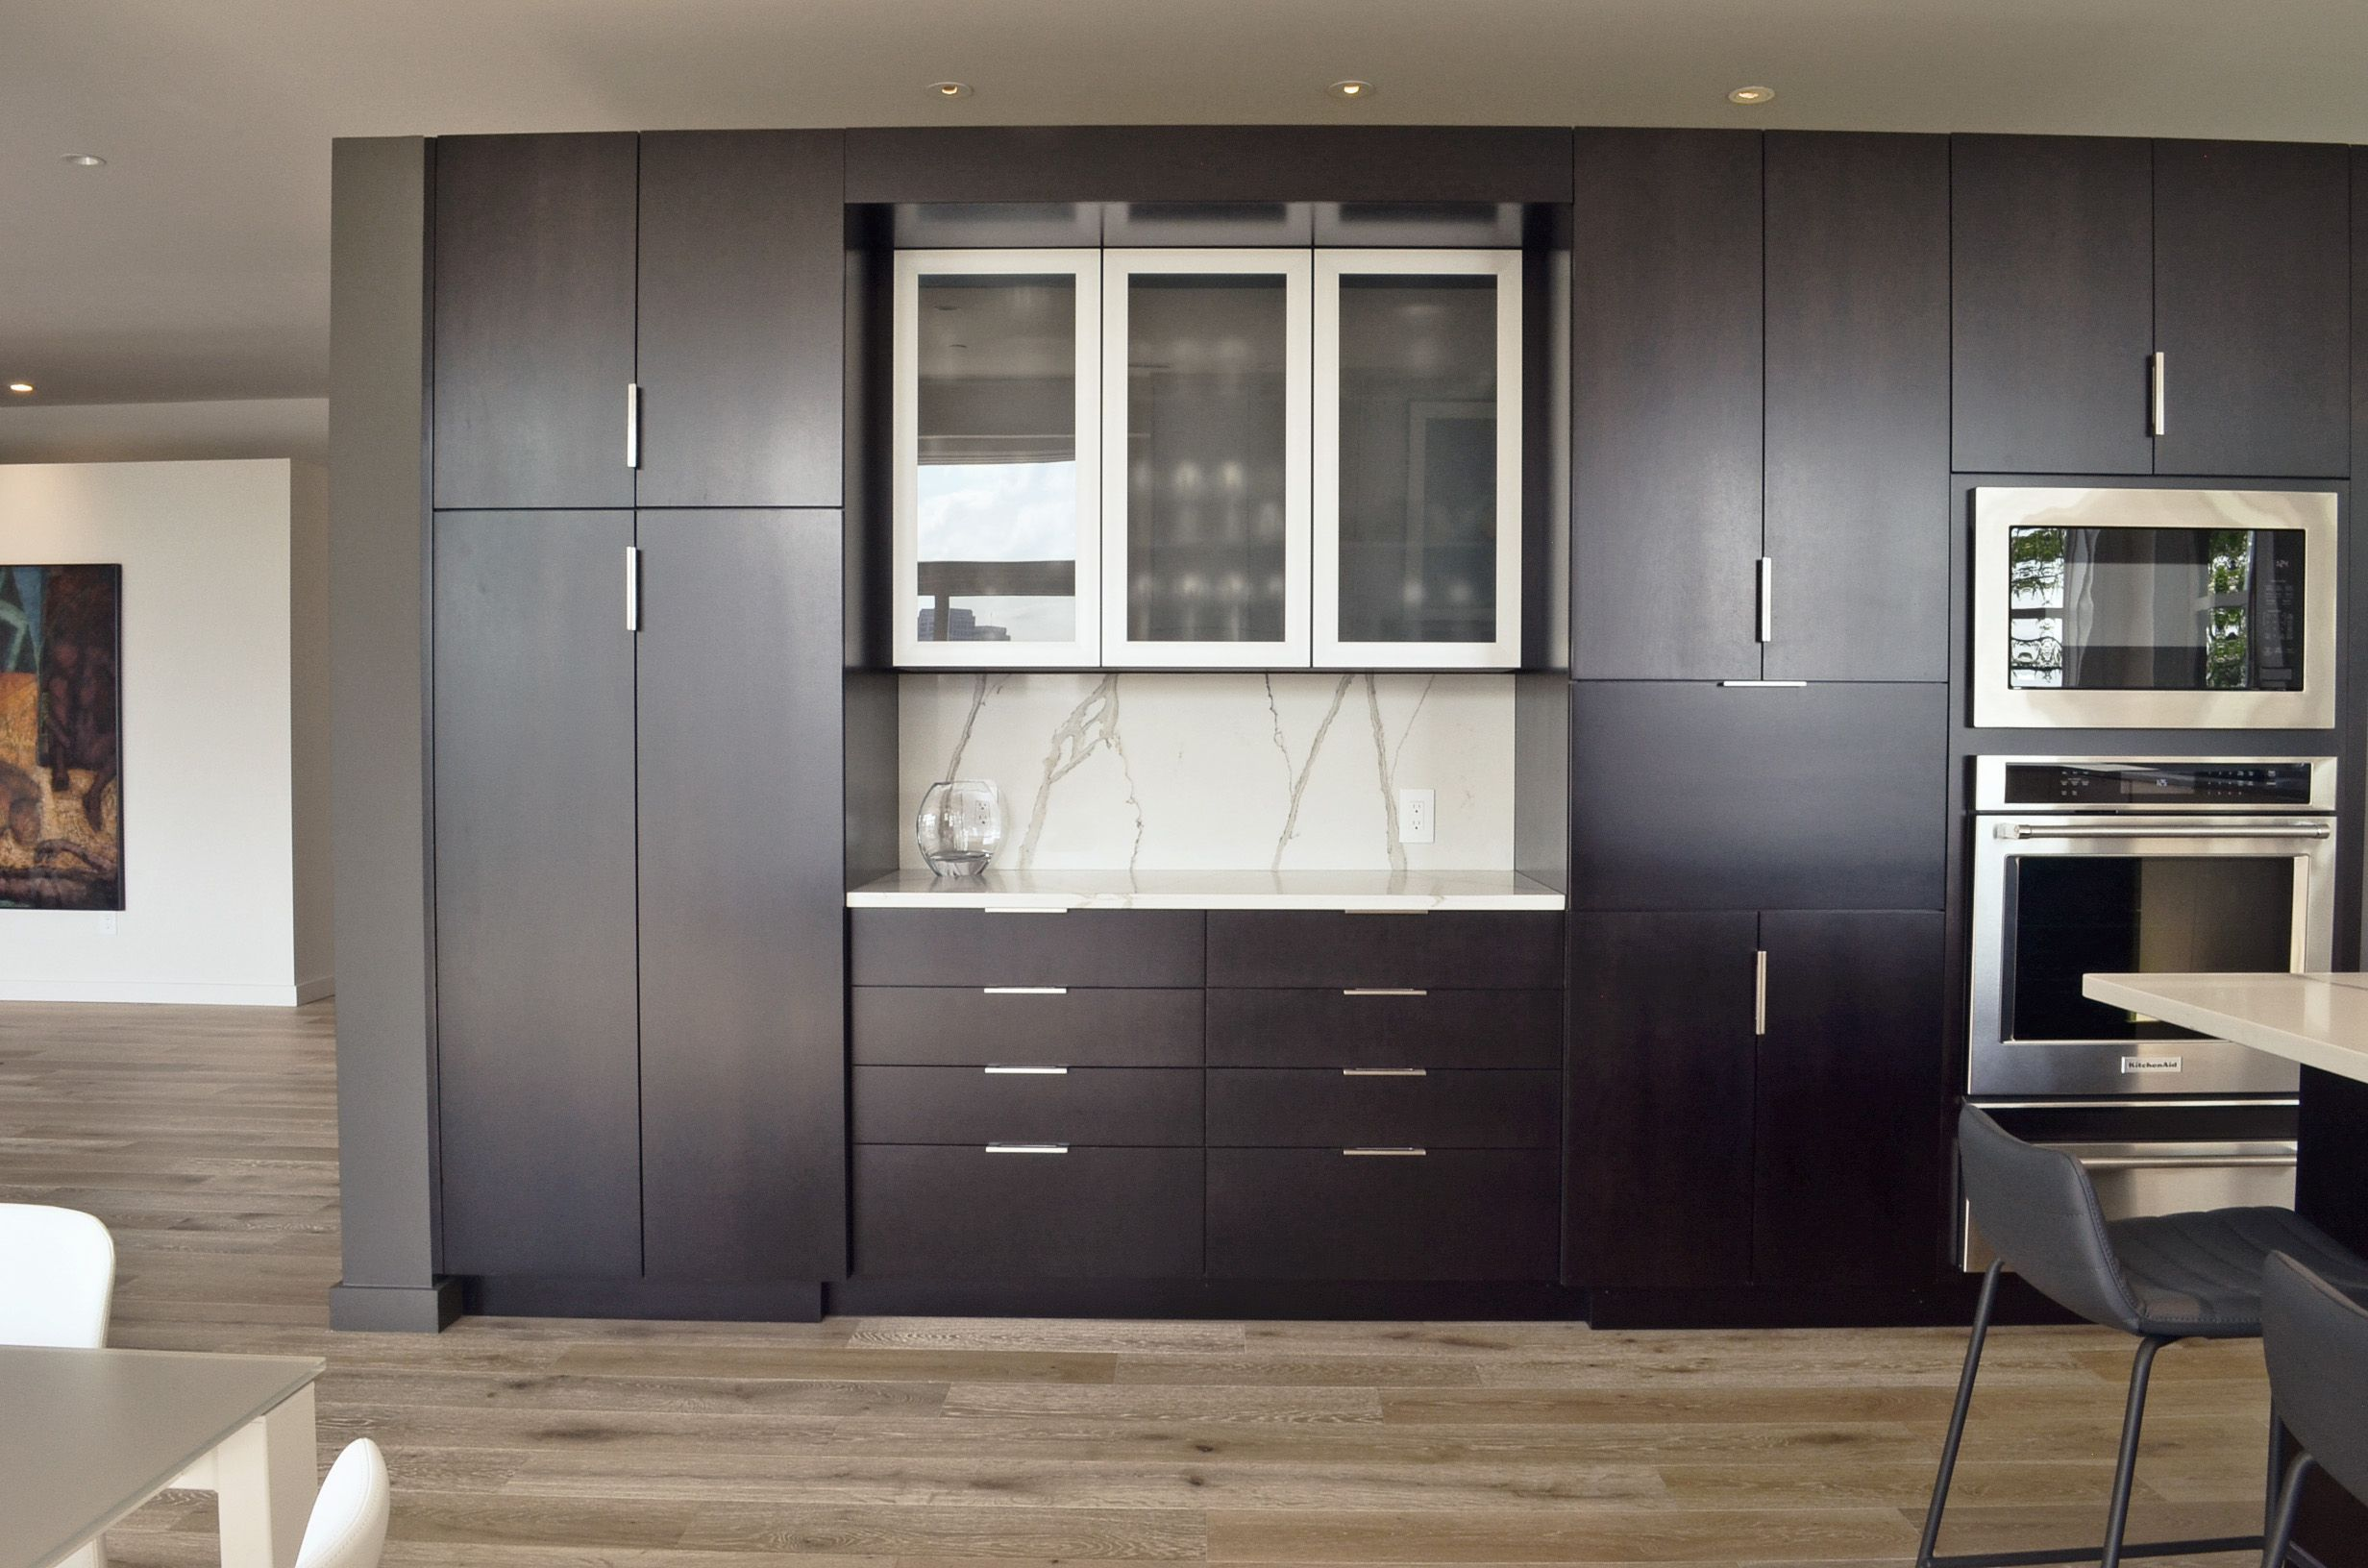 Custom dark wood cabinetry by interior designer, RM Interiors.